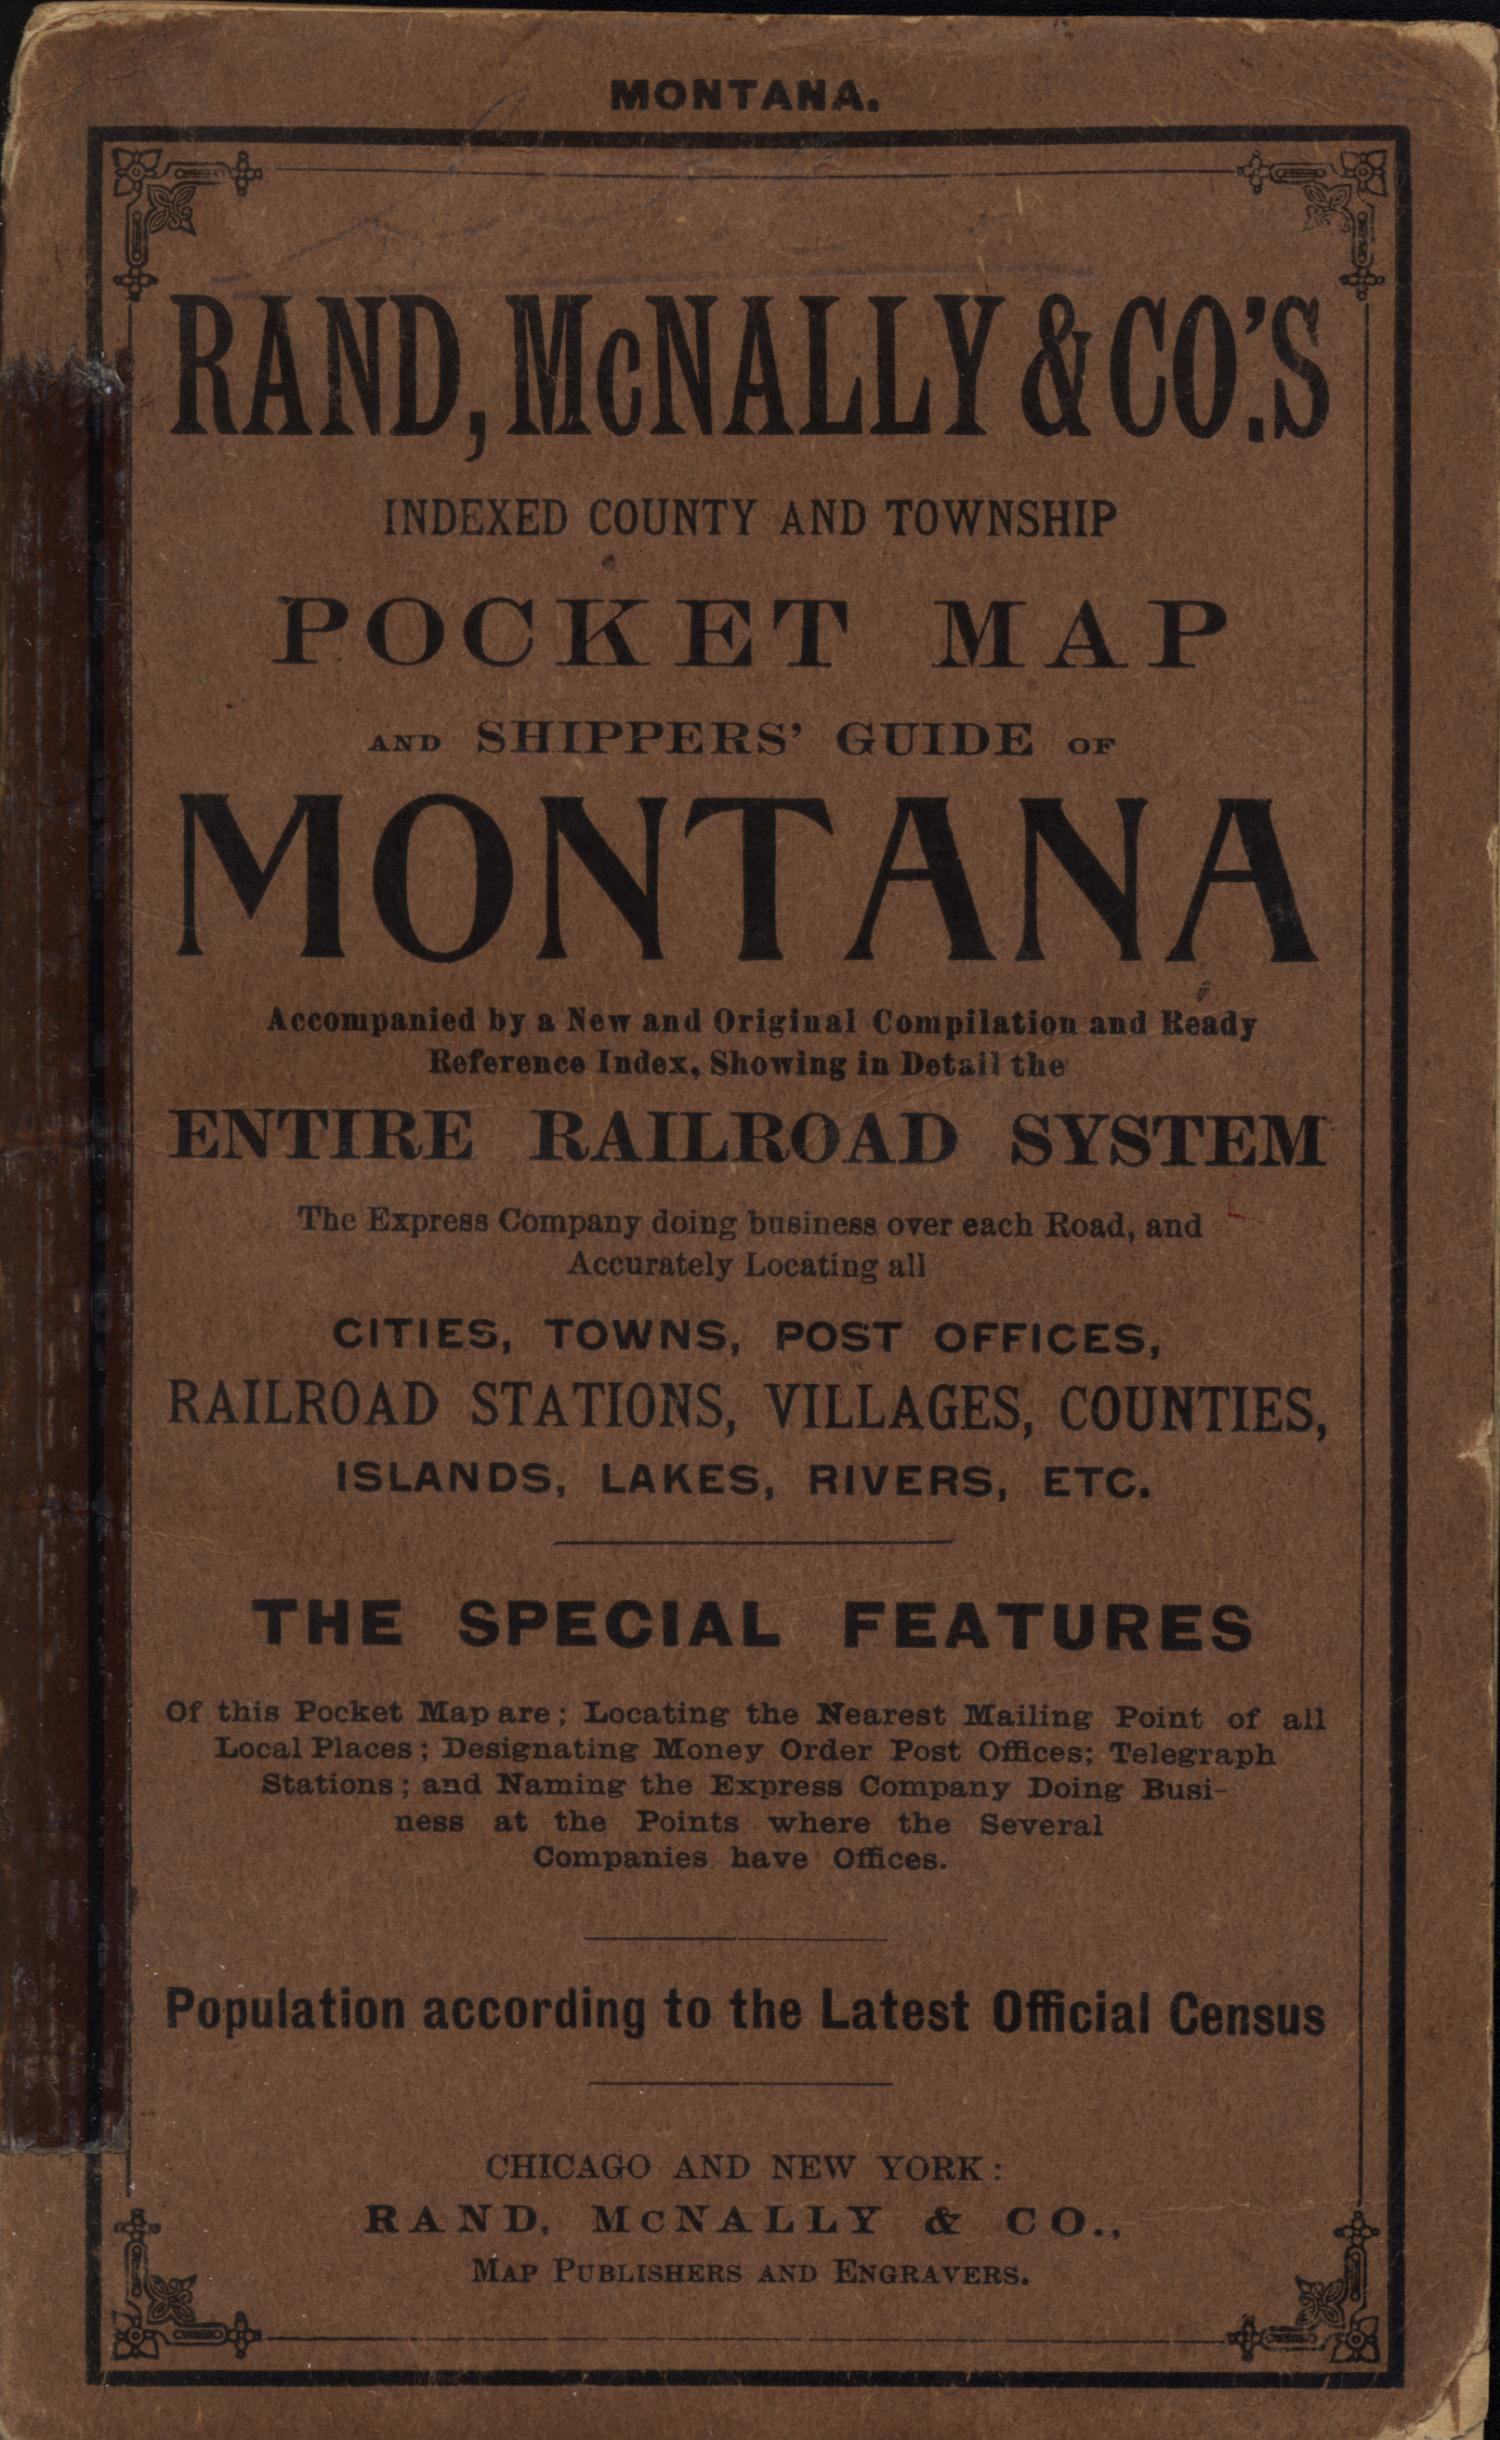 Rand McNally & Co.s indexed county and township pocket map and shippers guide of Montana : accompanied by a new and original compilation and ready reference index, showing in detail the entire railroad system ... [Accompanying Text]., Explanation and supporting information related to map that shows Montana counties, railroads, township grid, Native American reservations, military reservations, cities, towns, and notable physical features.,